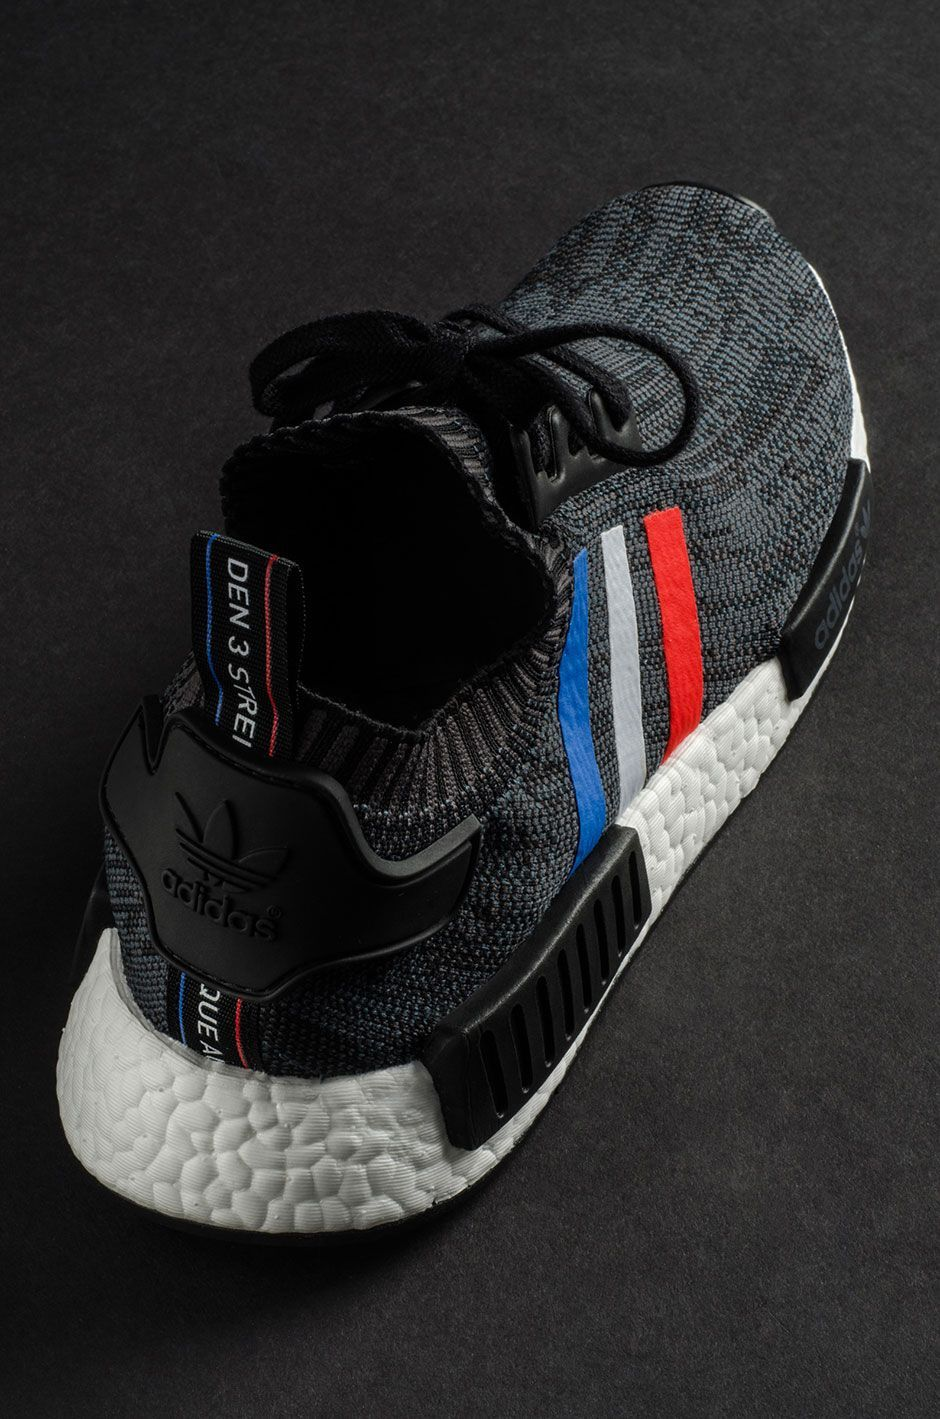 adidas NMD R1 Primeknit Tri-color Pack  BRKicks  1d16814438a6